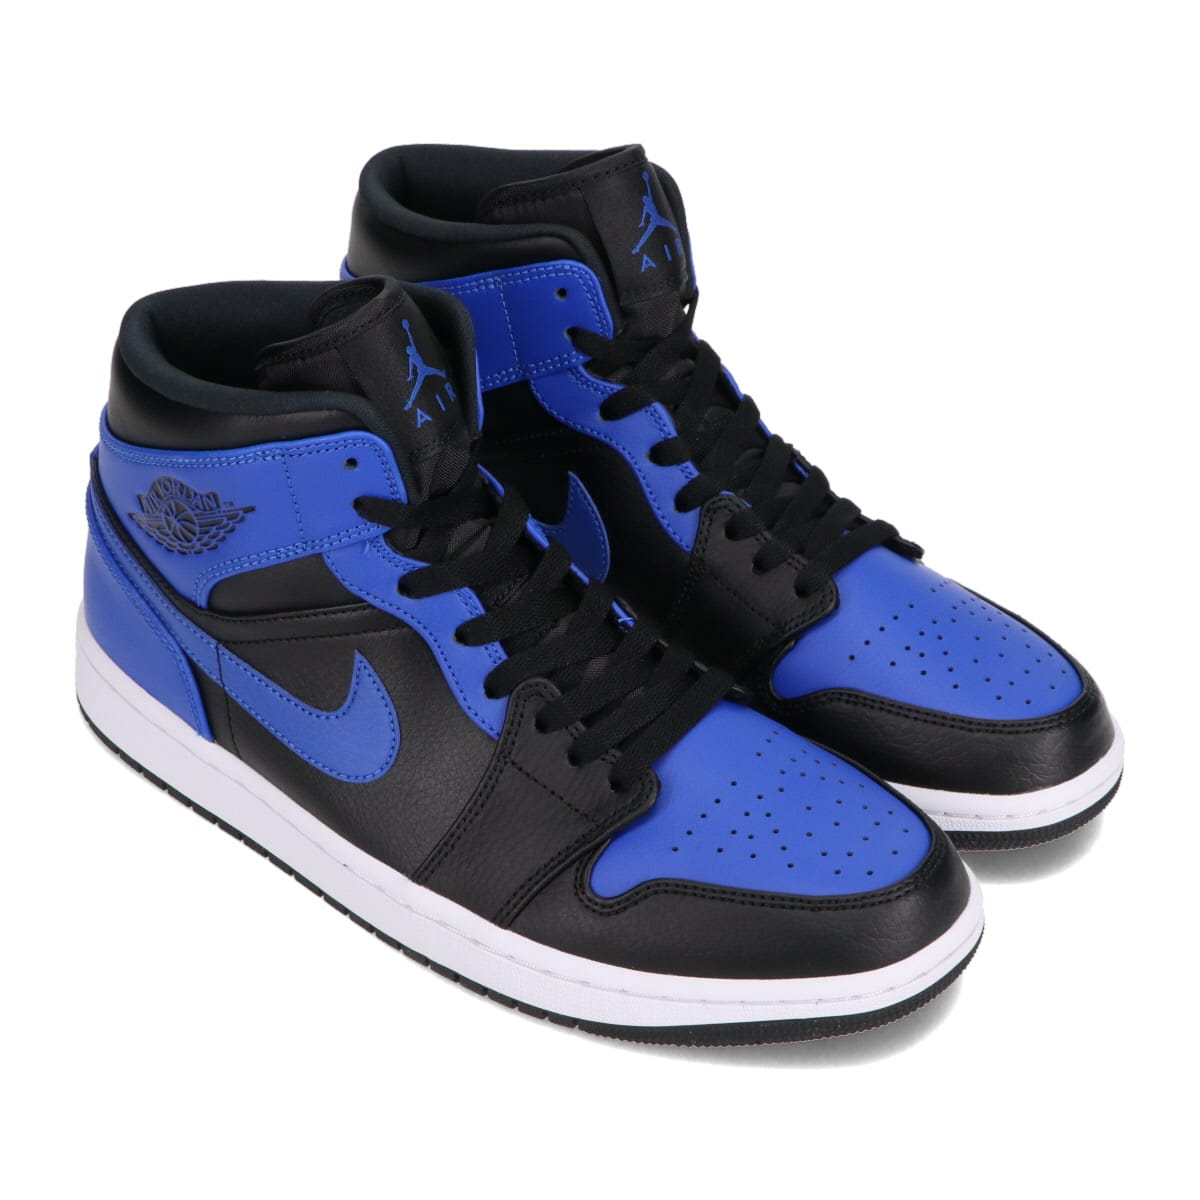 JORDAN BRAND AIR JORDAN 1 MID BLACK/HYPER ROYAL-WHITE 21SP-I_photo_large